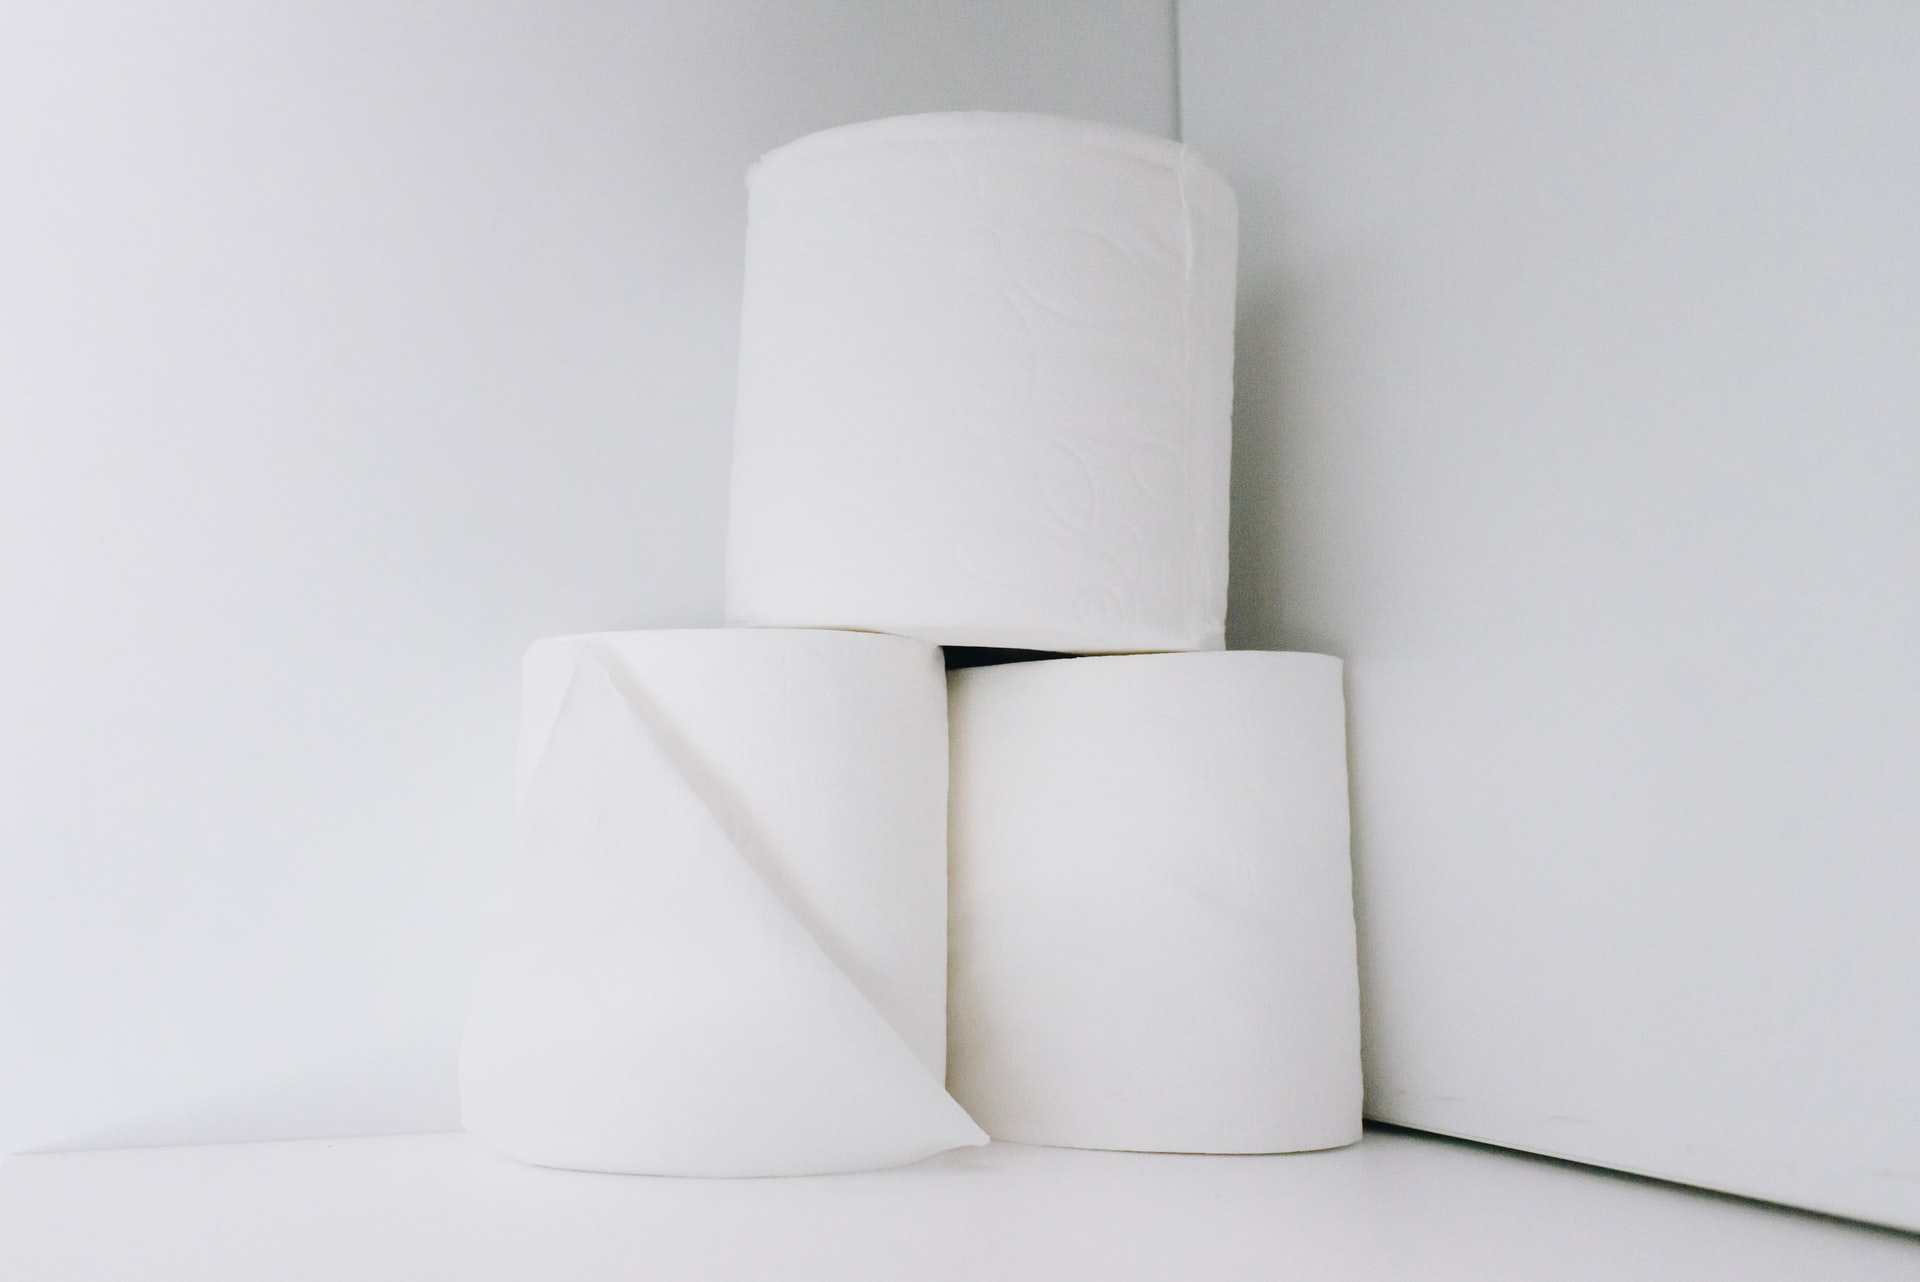 three white toilet rolls stacked against a white background